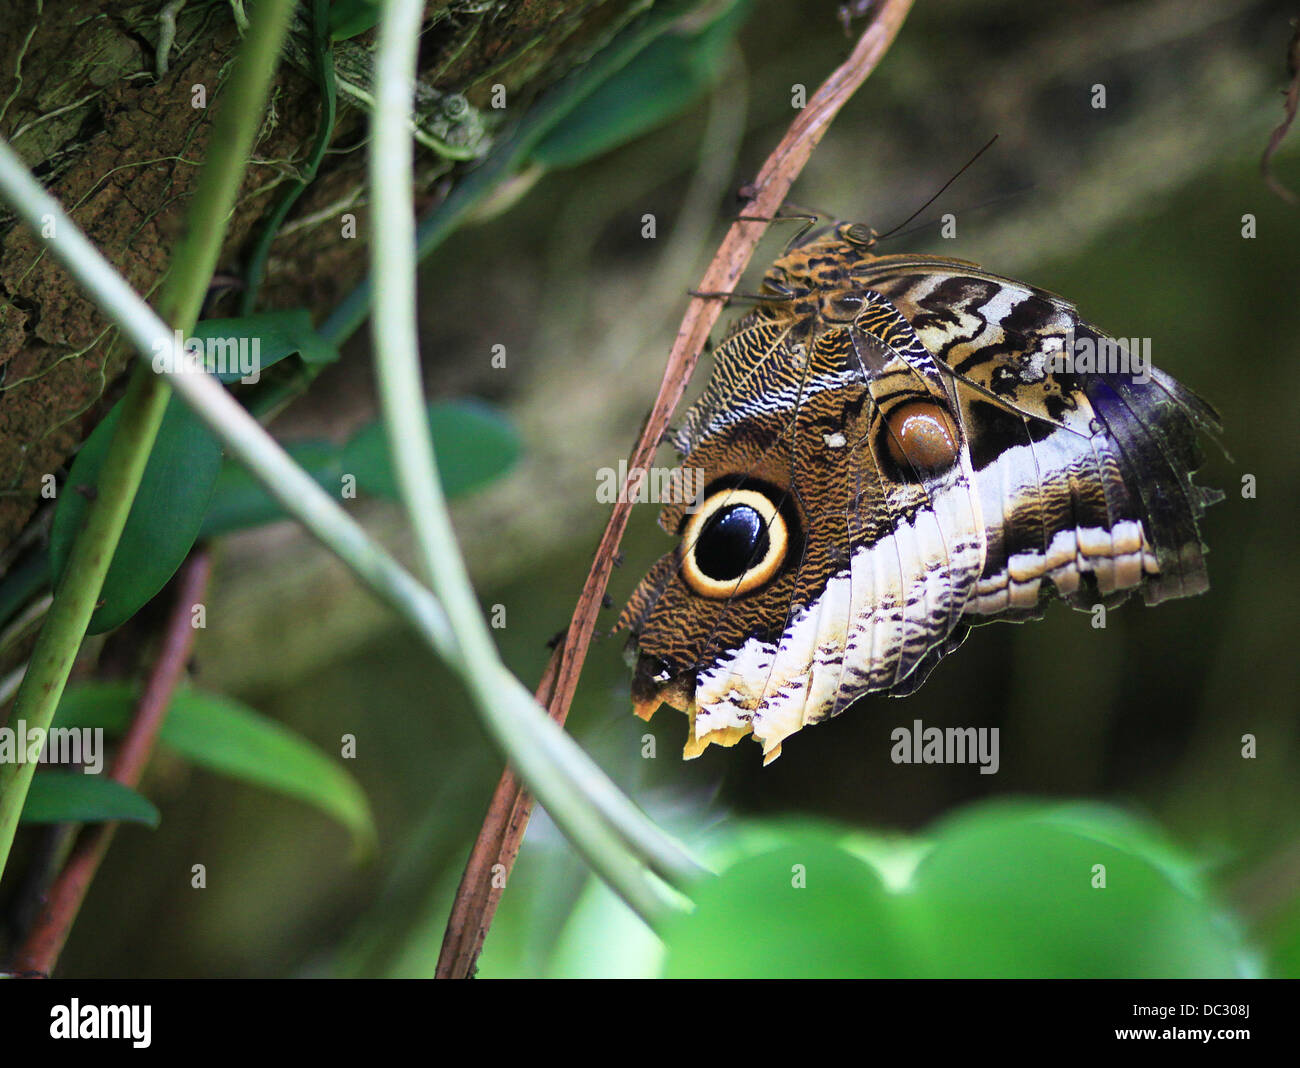 A Peleides Blue Morpho butterfly (Morpho peleides), also known as Common Morpho or The Emperor, perching on a plant. Stock Photo